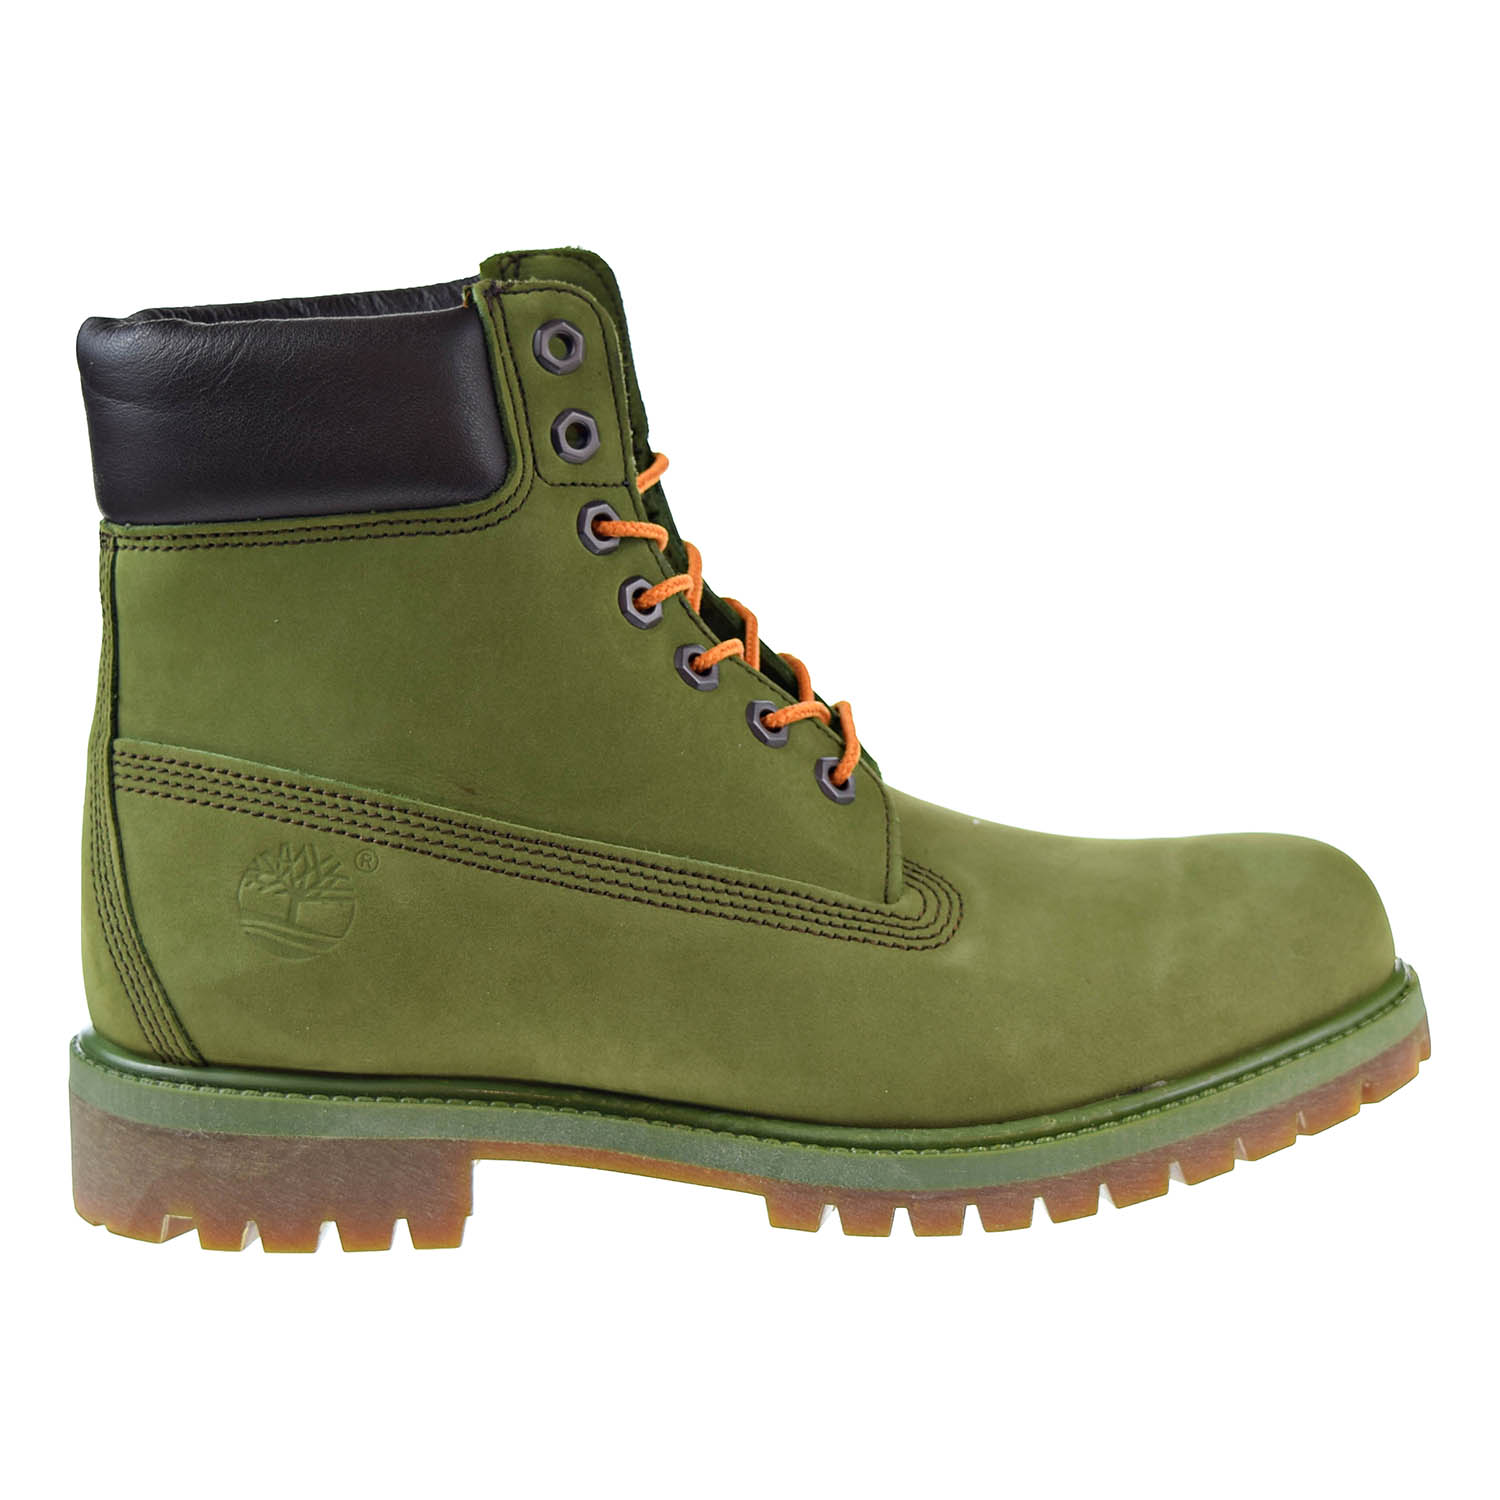 "Men's Timberland 6"" Premium Boot by Timberland"